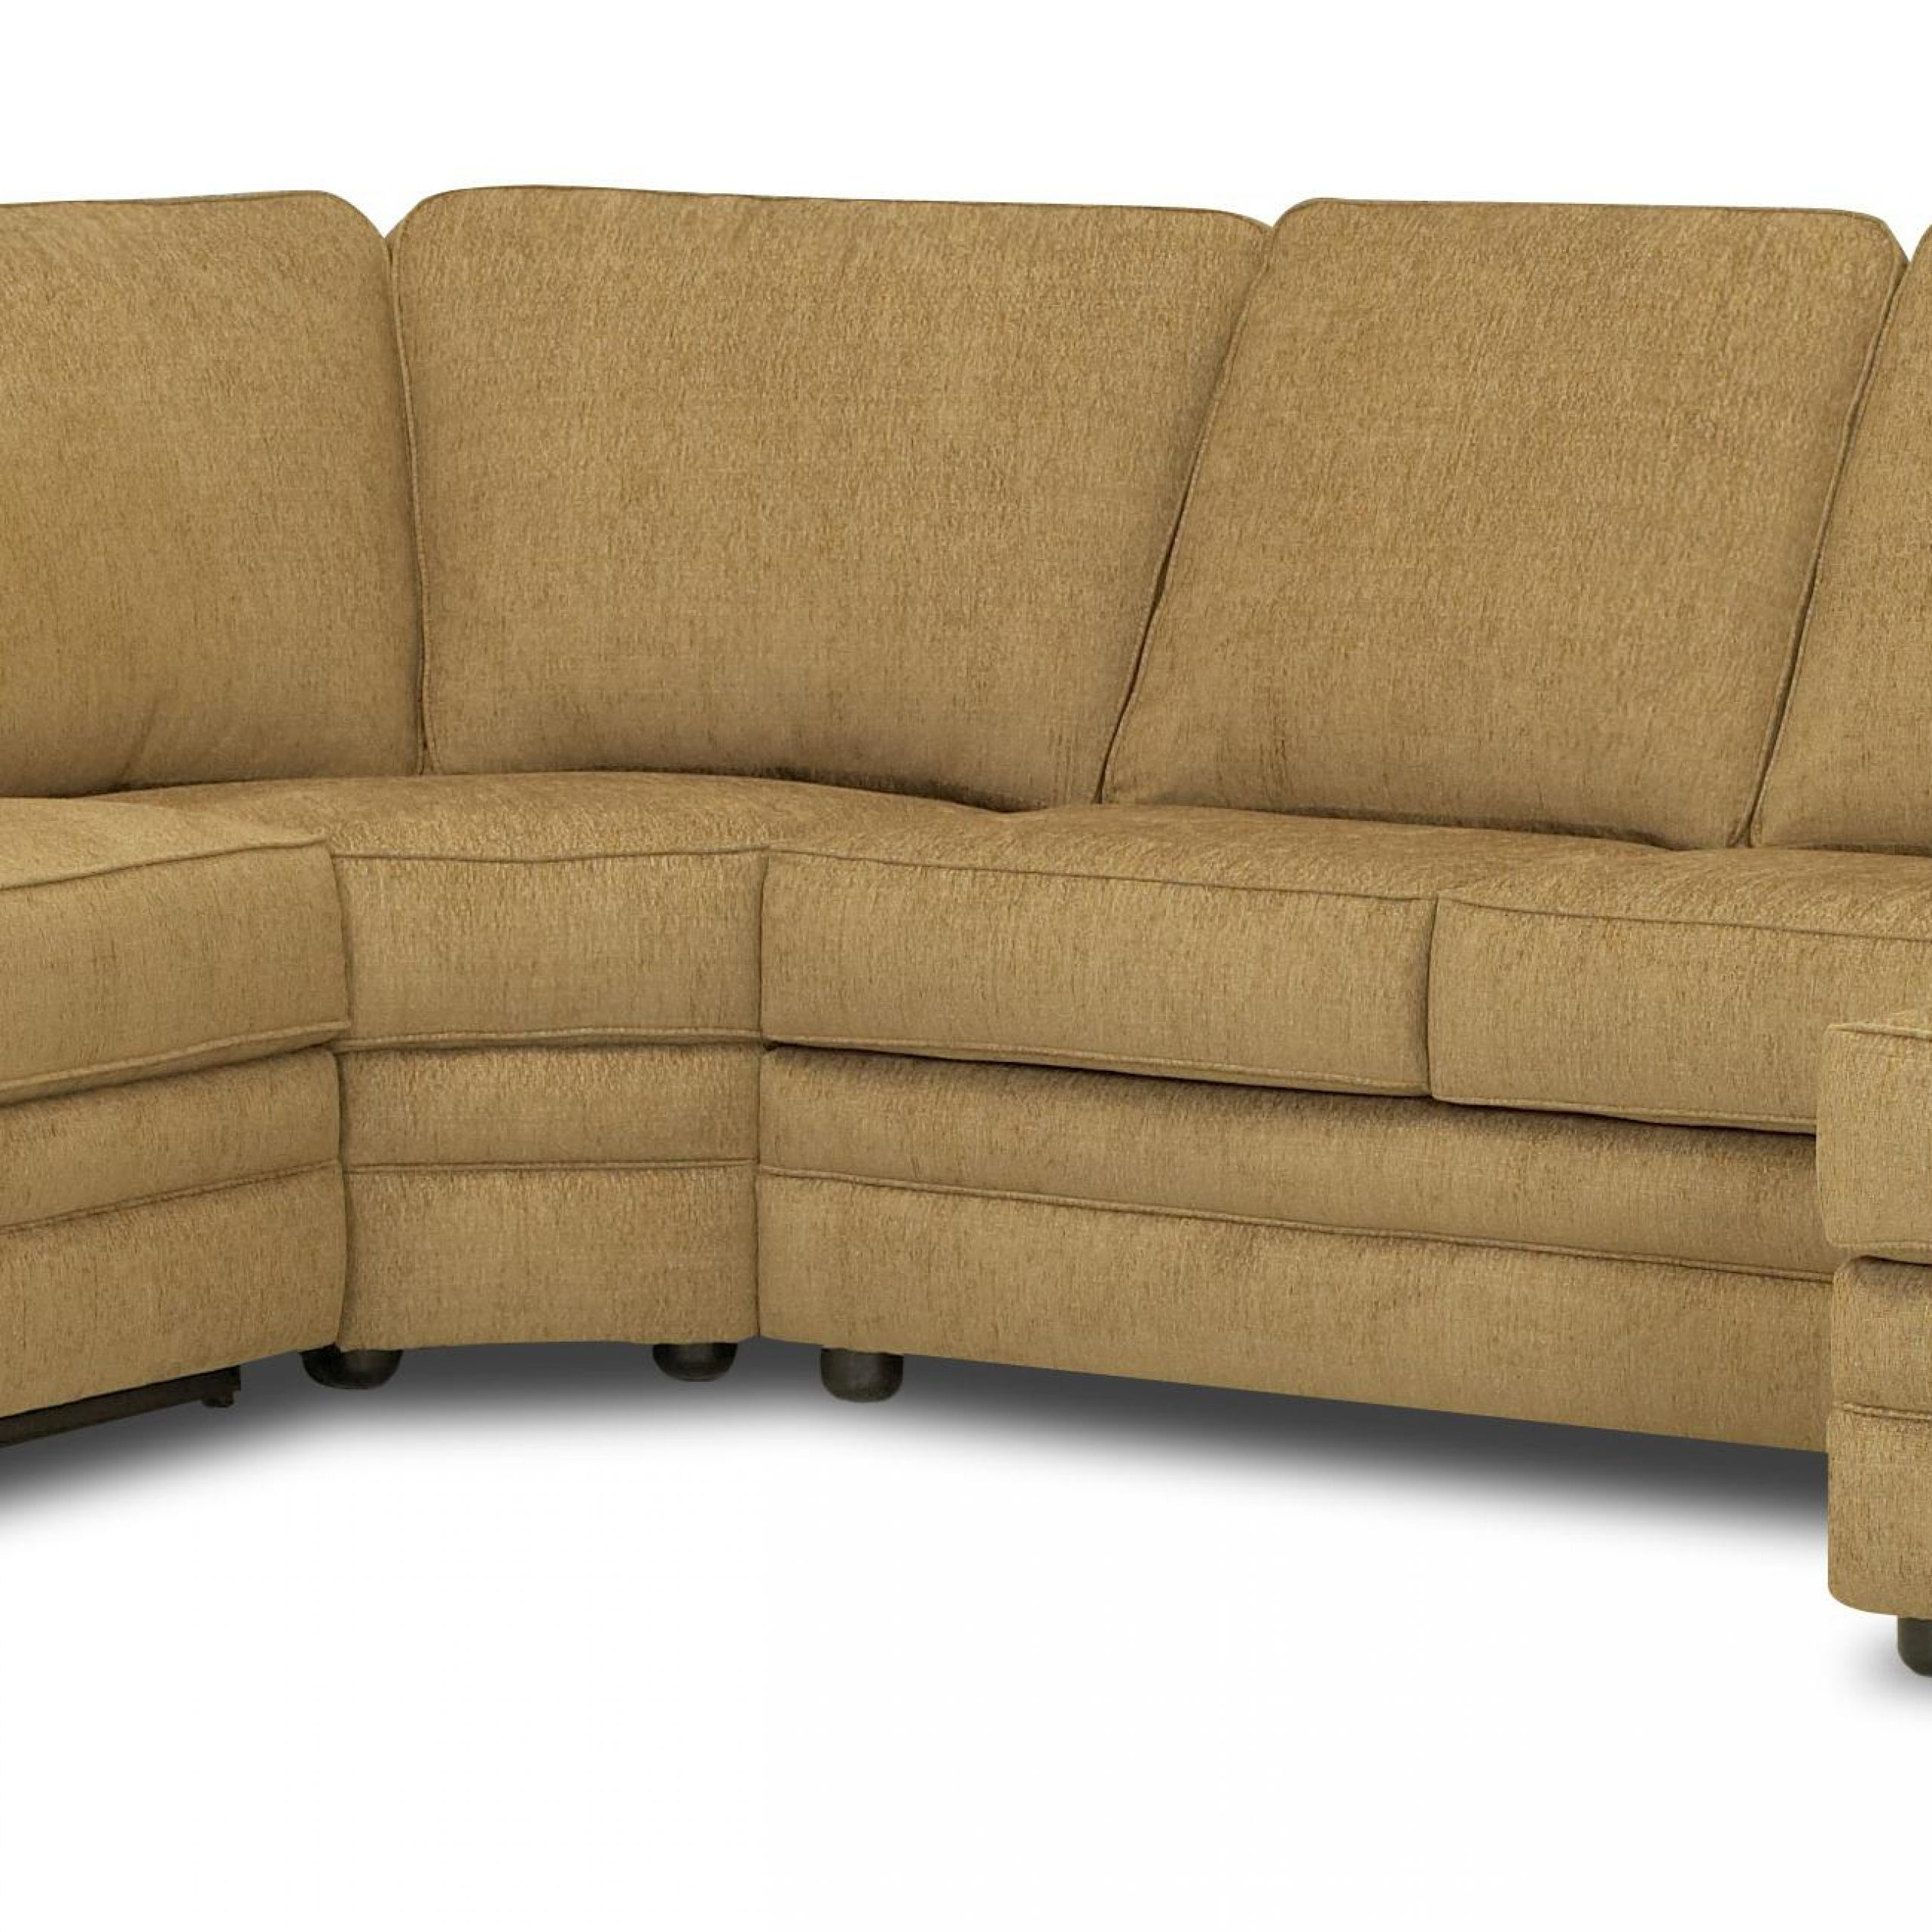 Reclining Sectional With Left Side Chaiseklaussner With Regard To Newest Palisades Reclining Sectional Sofas With Left Storage Chaise (View 15 of 20)